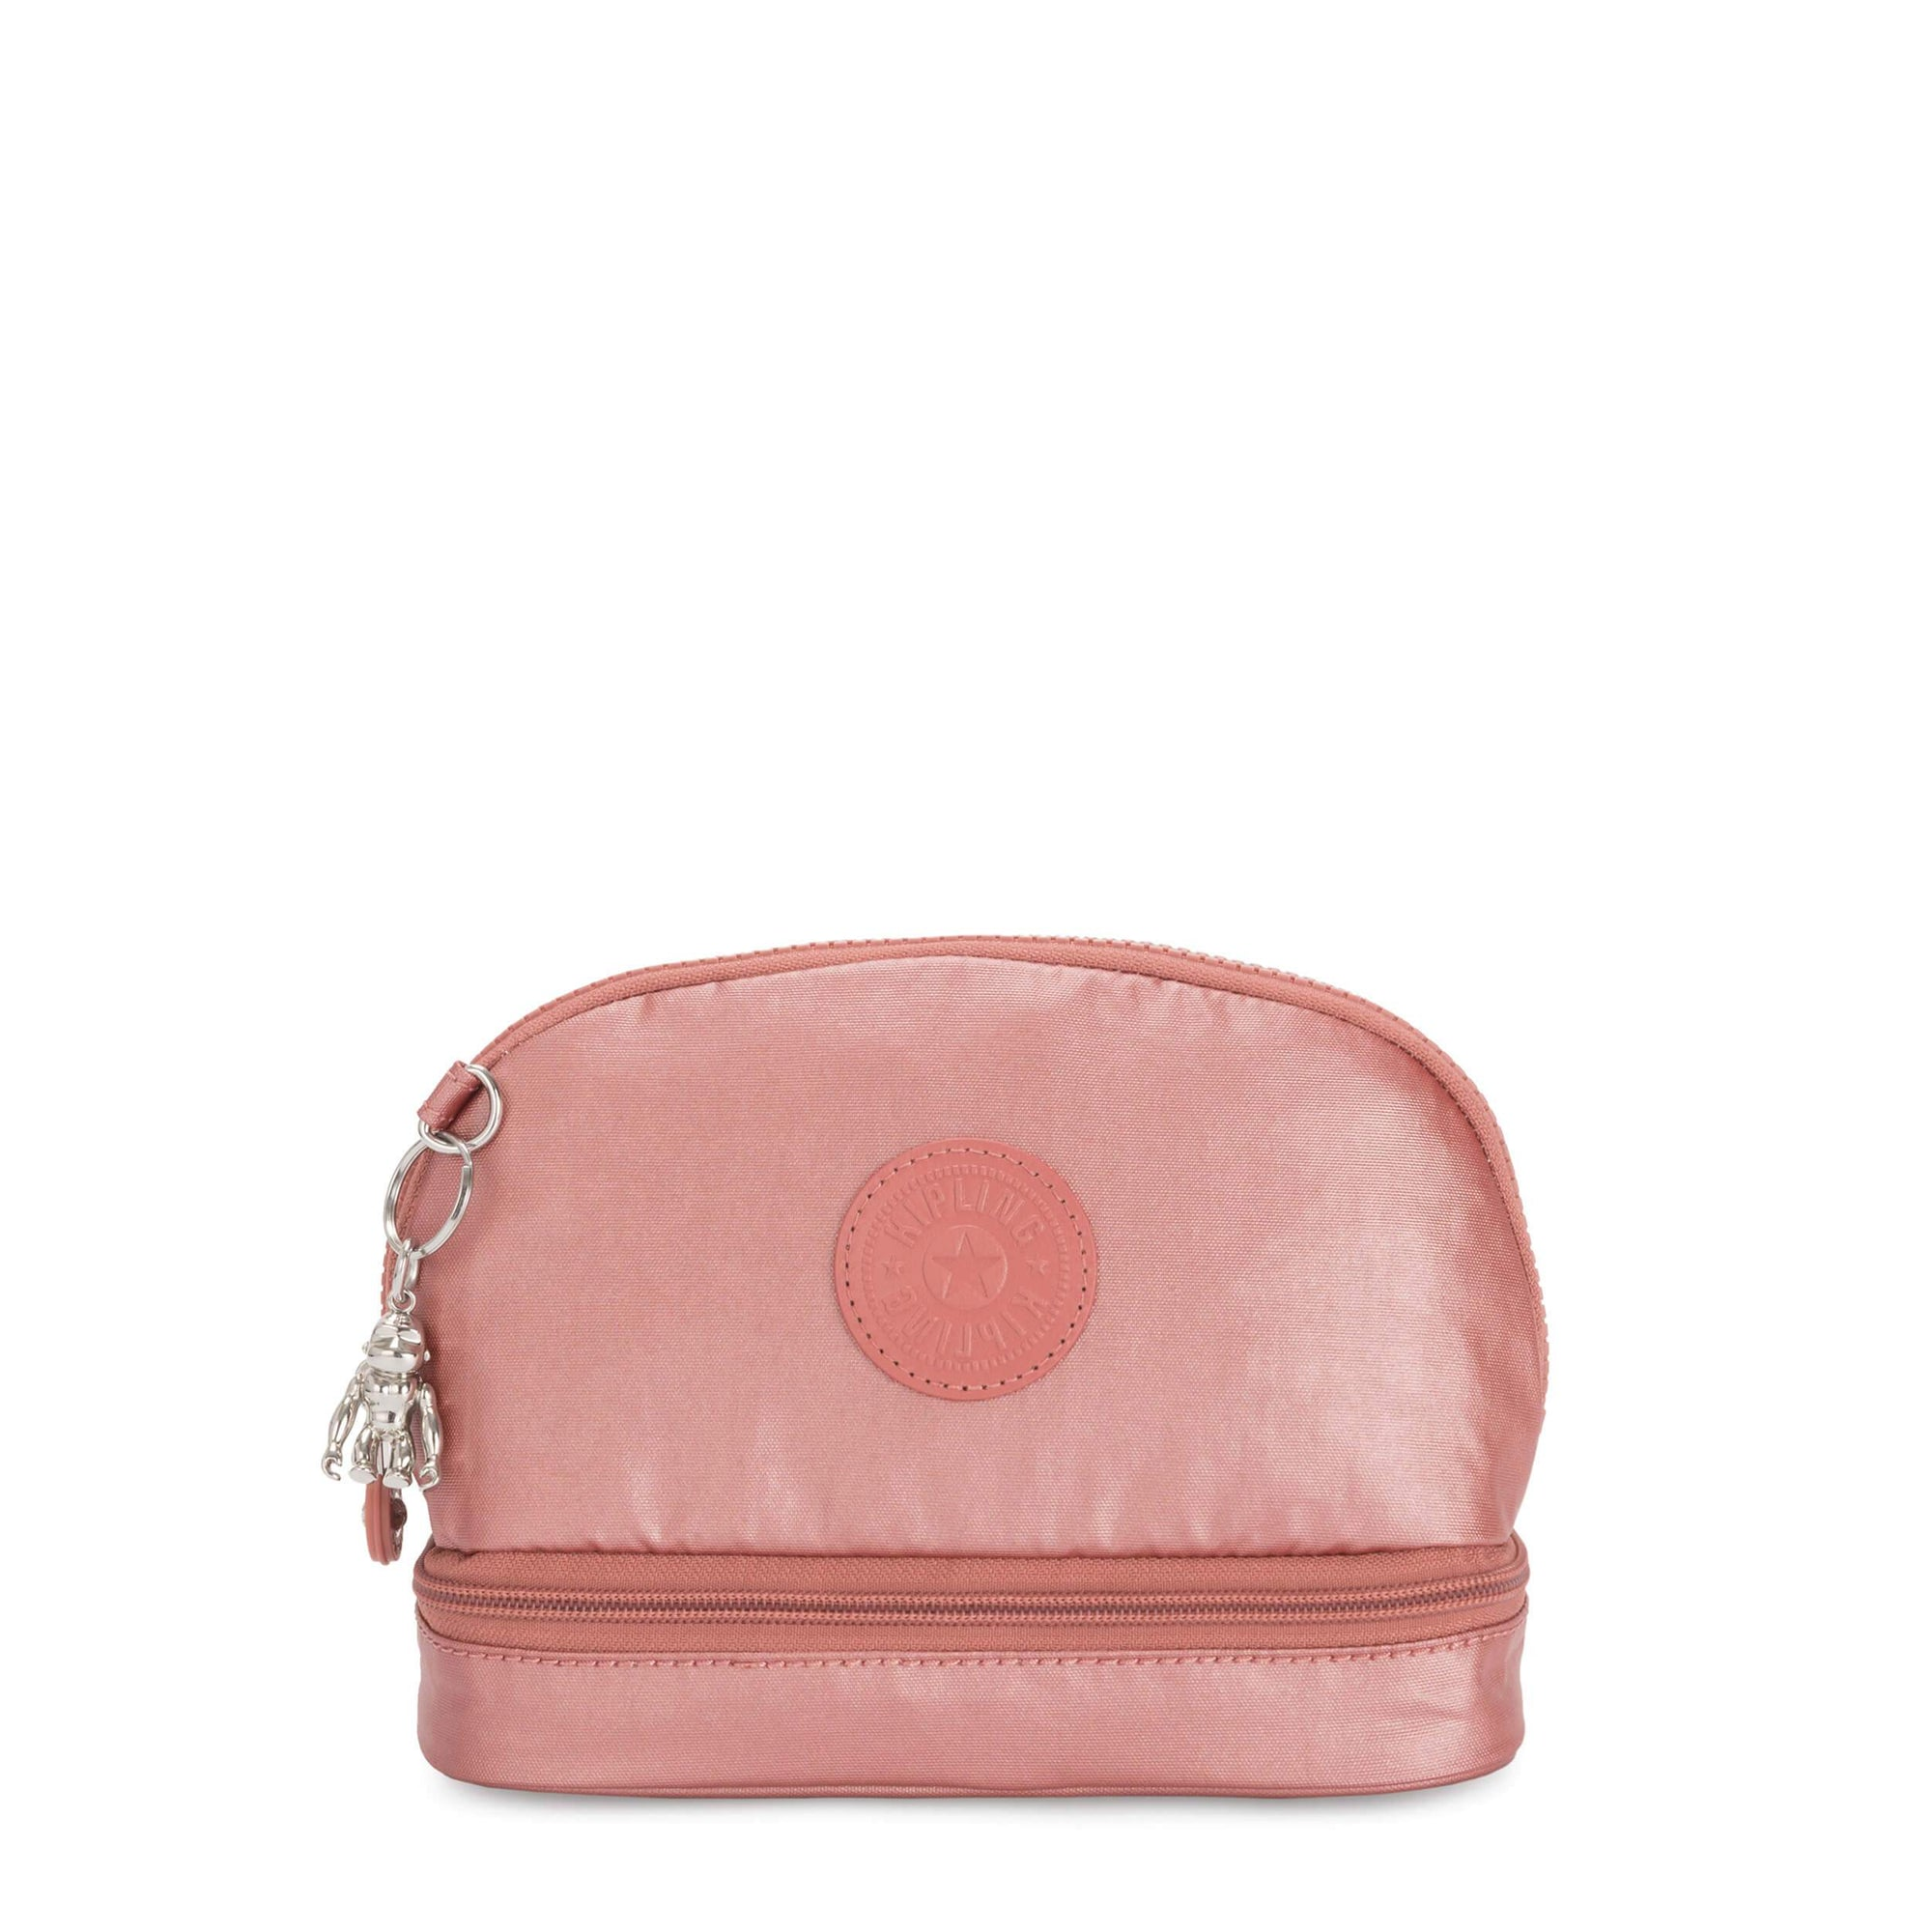 Cosmetiquera Kipling Multi Keeper Metallic Rust KI291048P